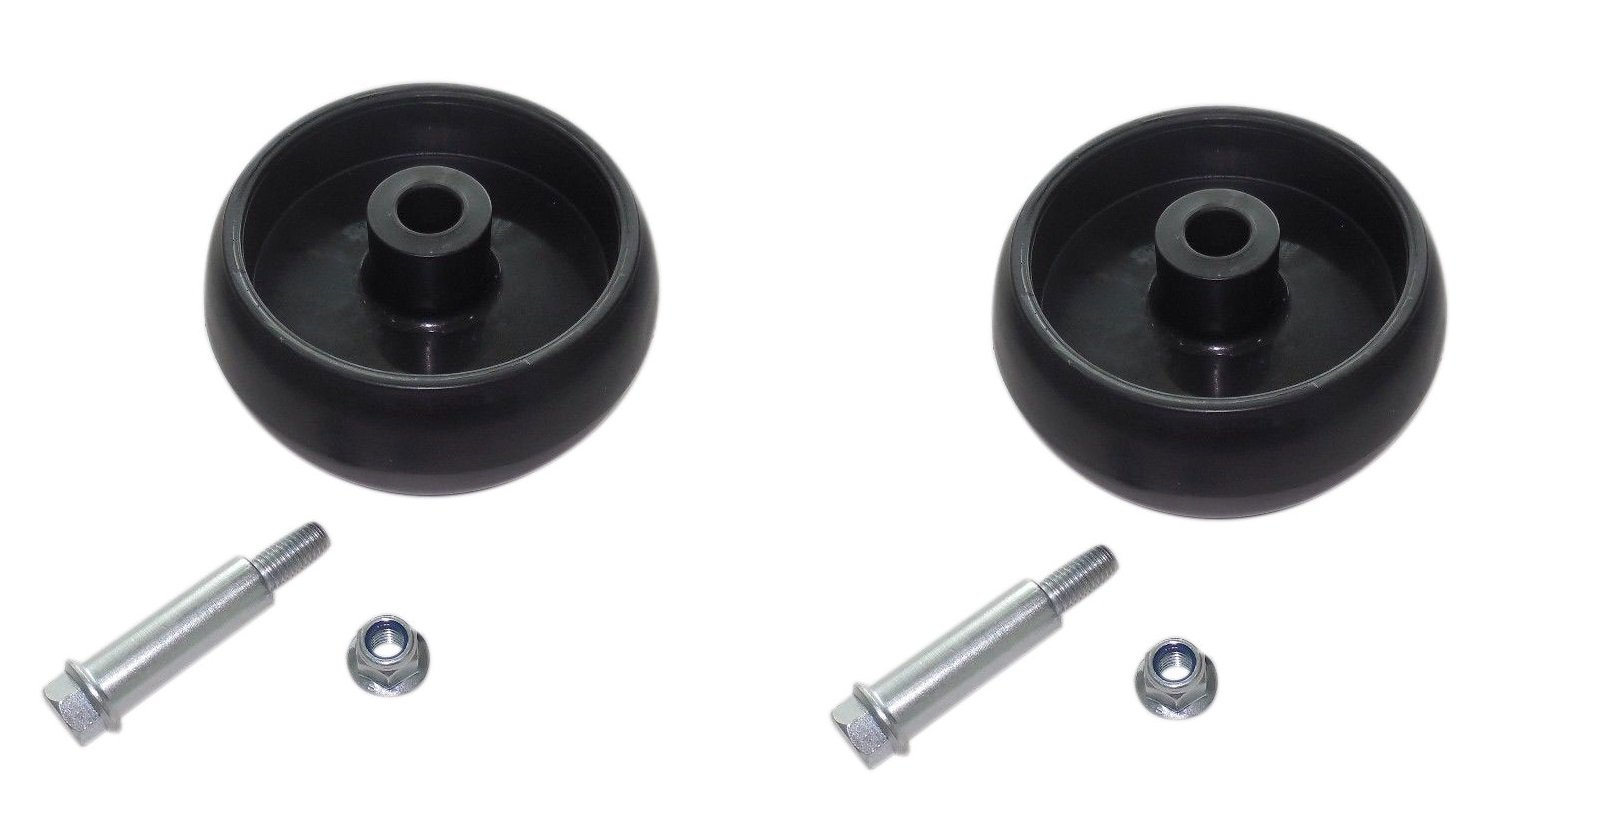 New TWO (2) John Deere Deck Wheels L100 L110 L120 L130 L105 L107 W/ Bolt & Nut